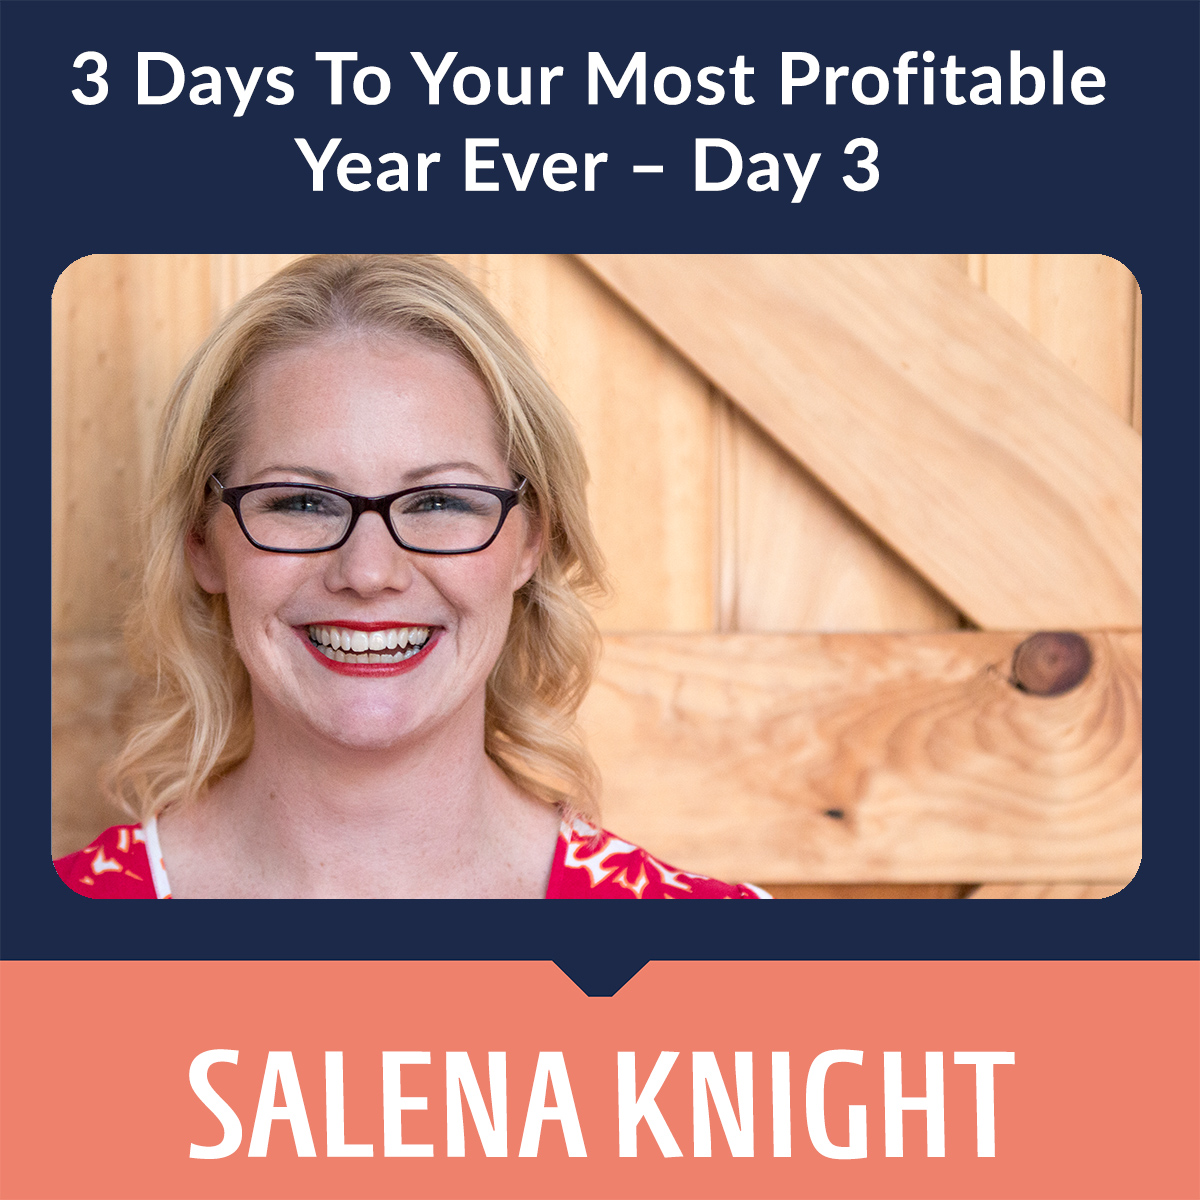 3_Days_To_Your_Most_Profitable_Year_Ever__Day_3_SQR